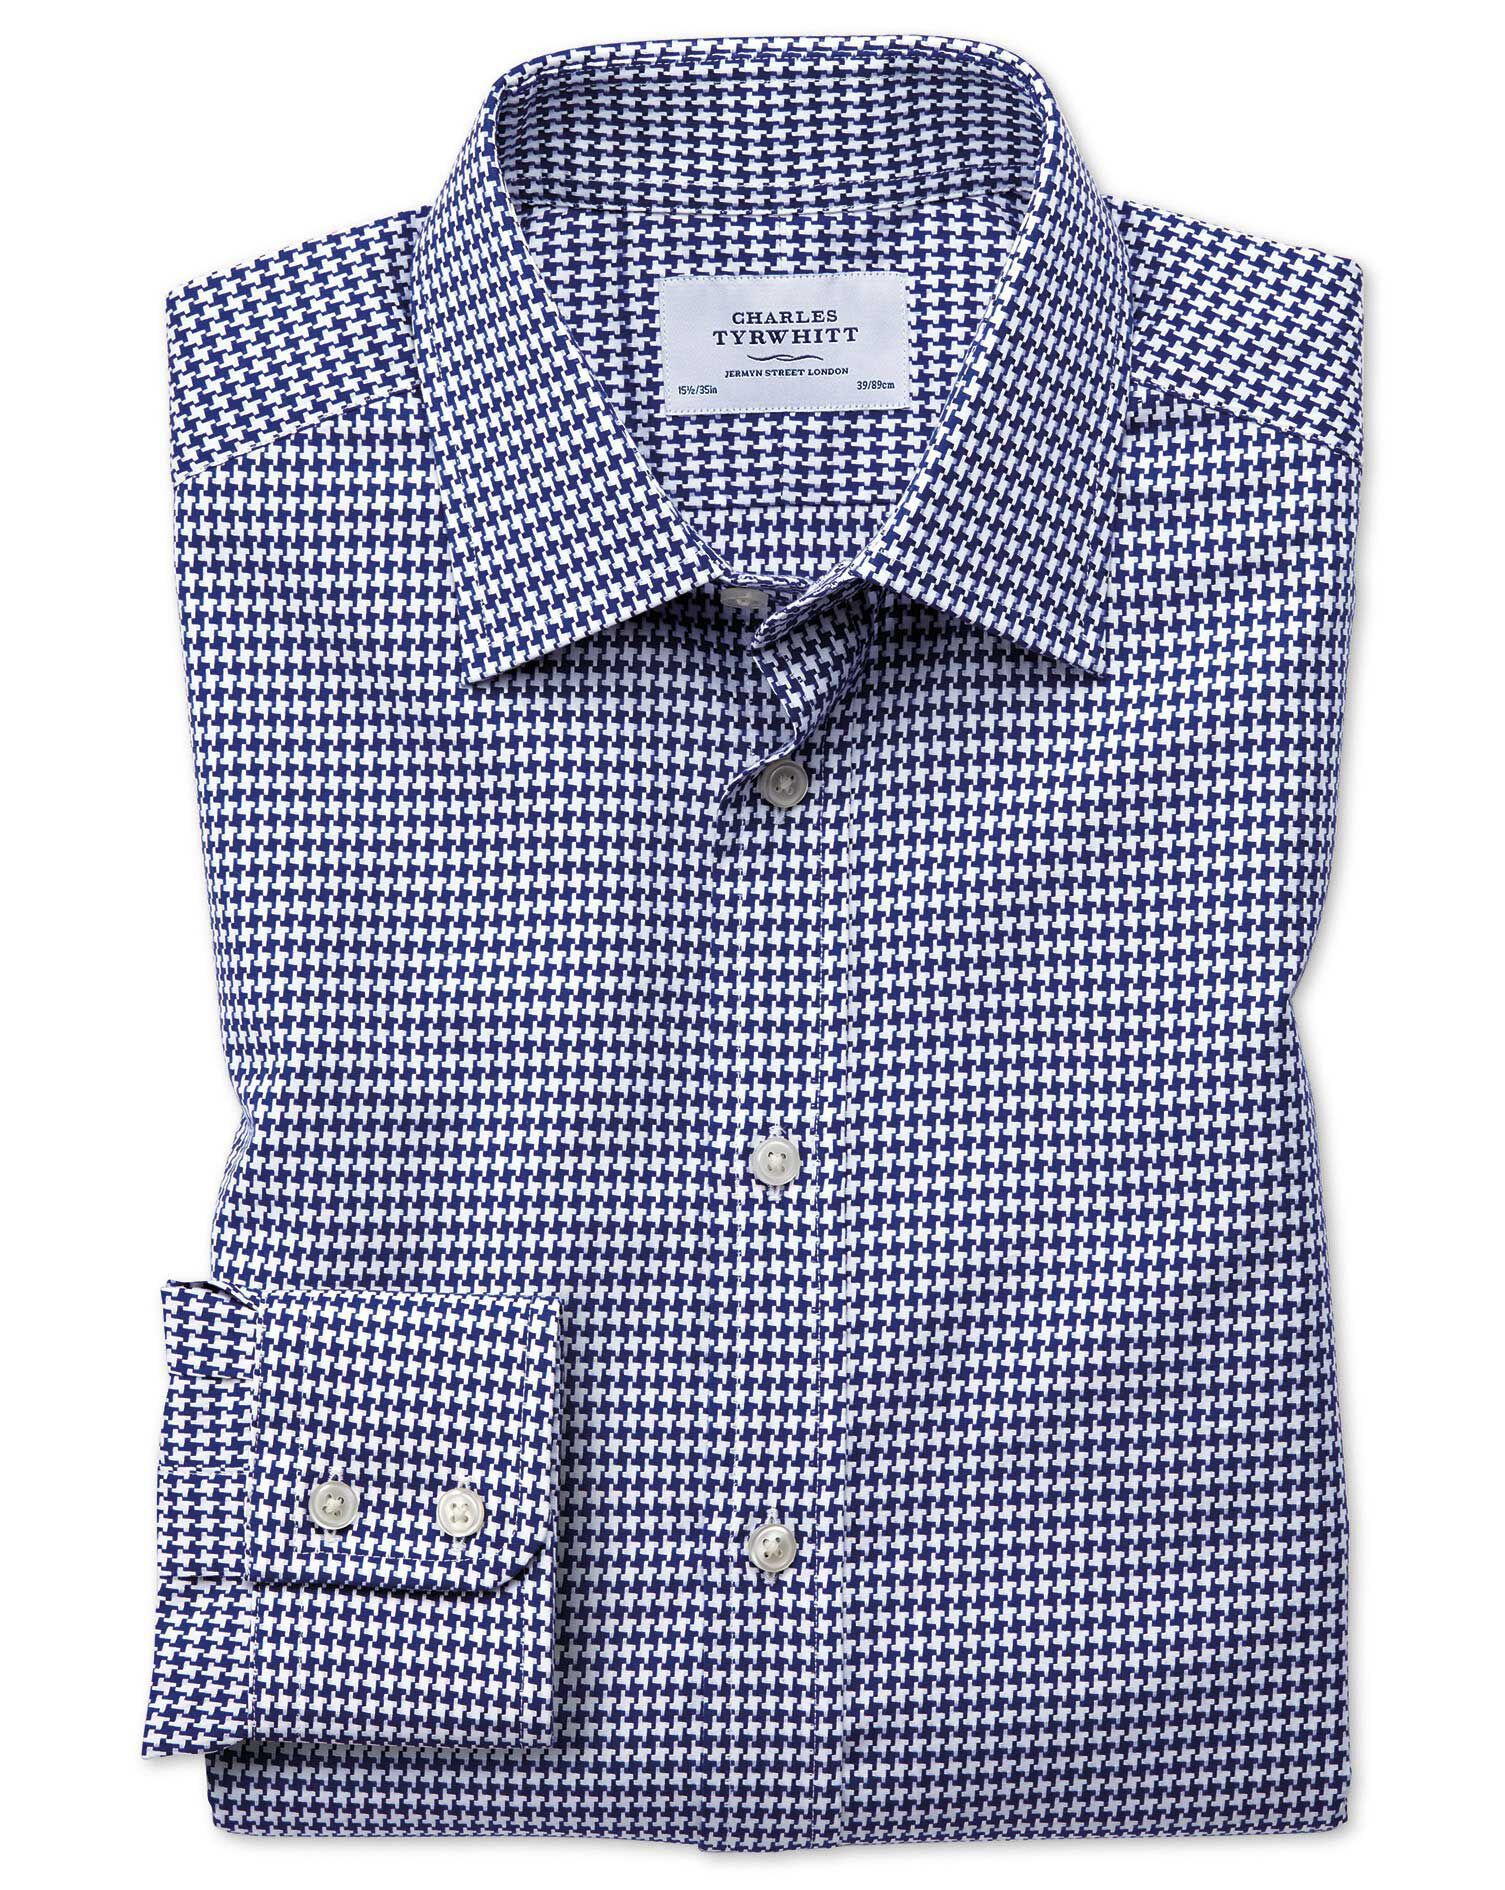 Classic Fit Large Puppytooth Blue Cotton Formal Shirt Single Cuff Size 16/33 by Charles Tyrwhitt